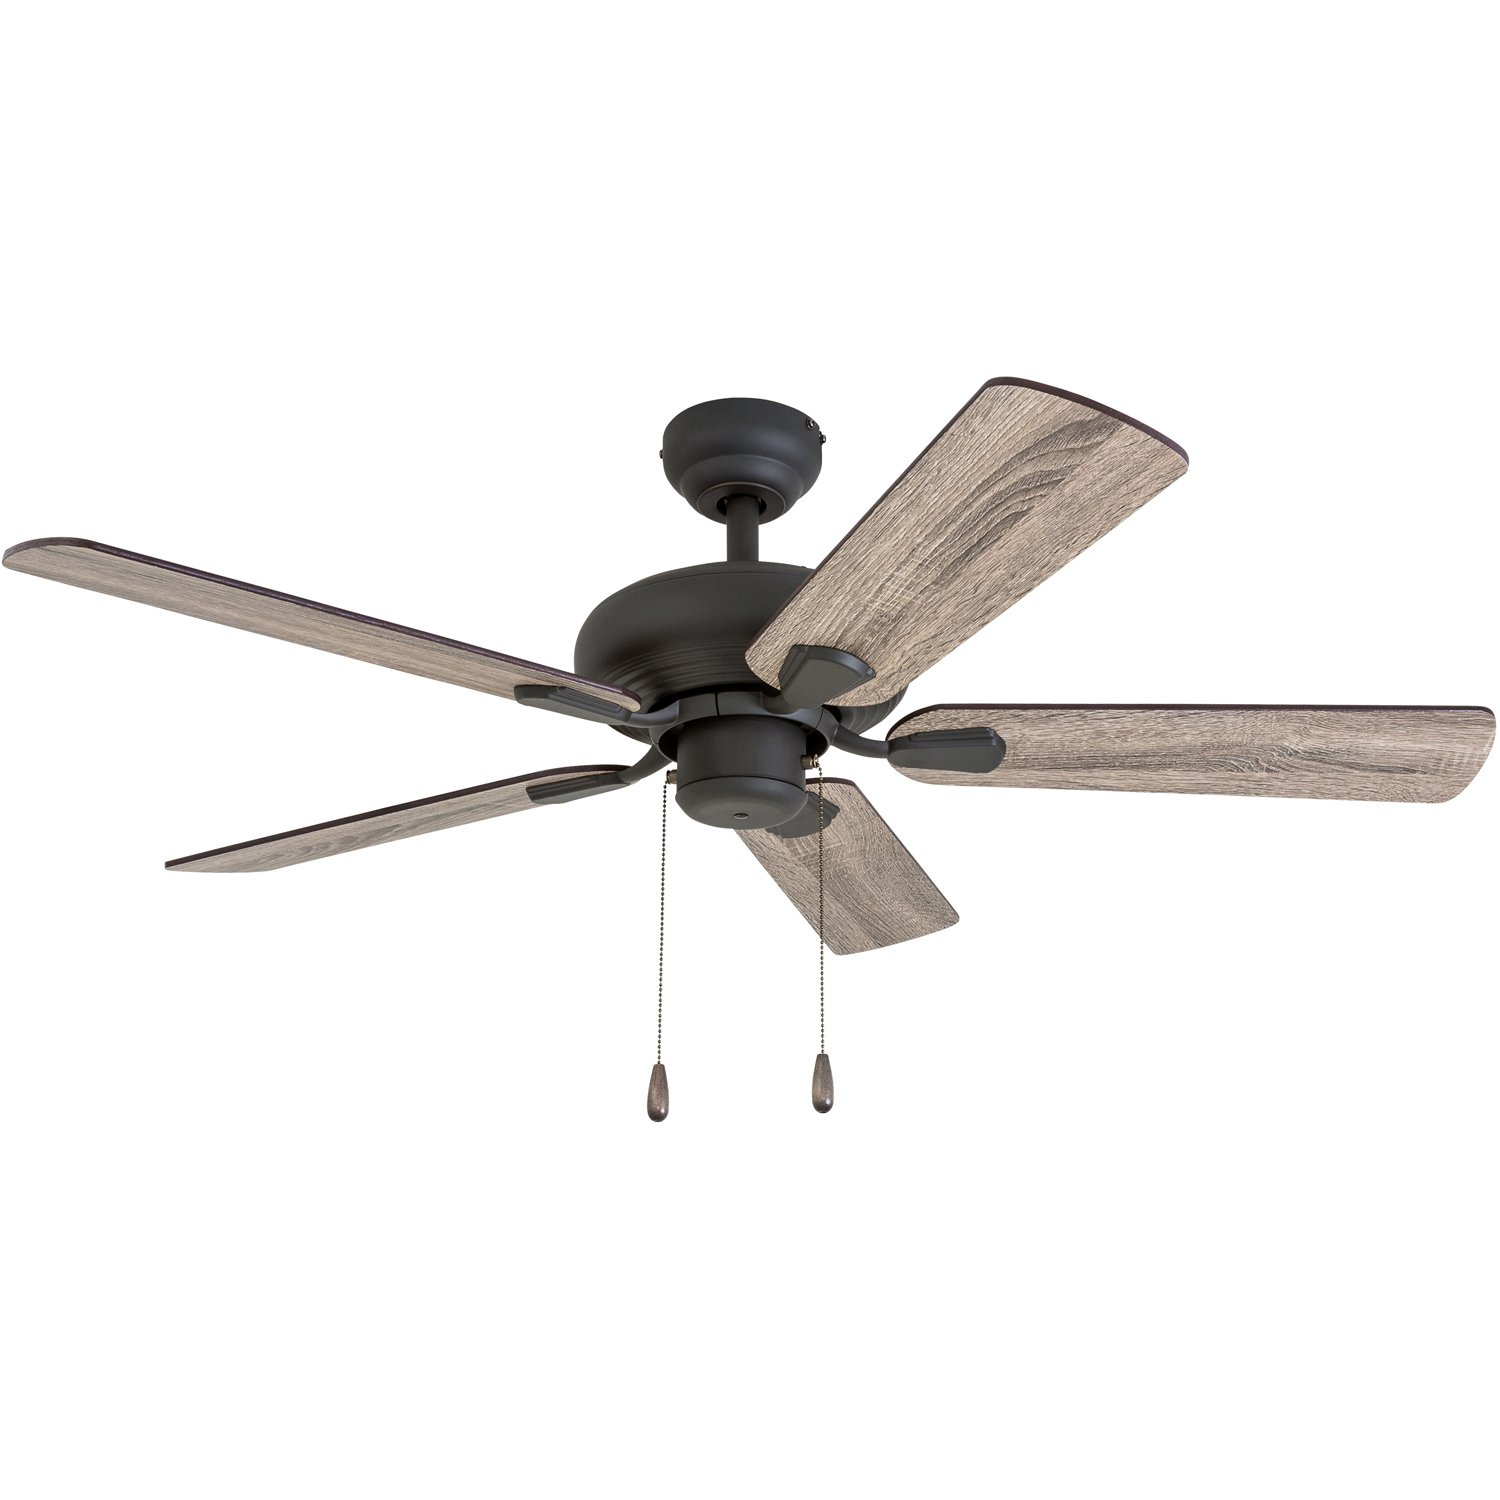 Prominence Home 50587-01 Russwood Traditional Ceiling Fan, 42'', Barnwood/Tumbleweed, Aged Bronze